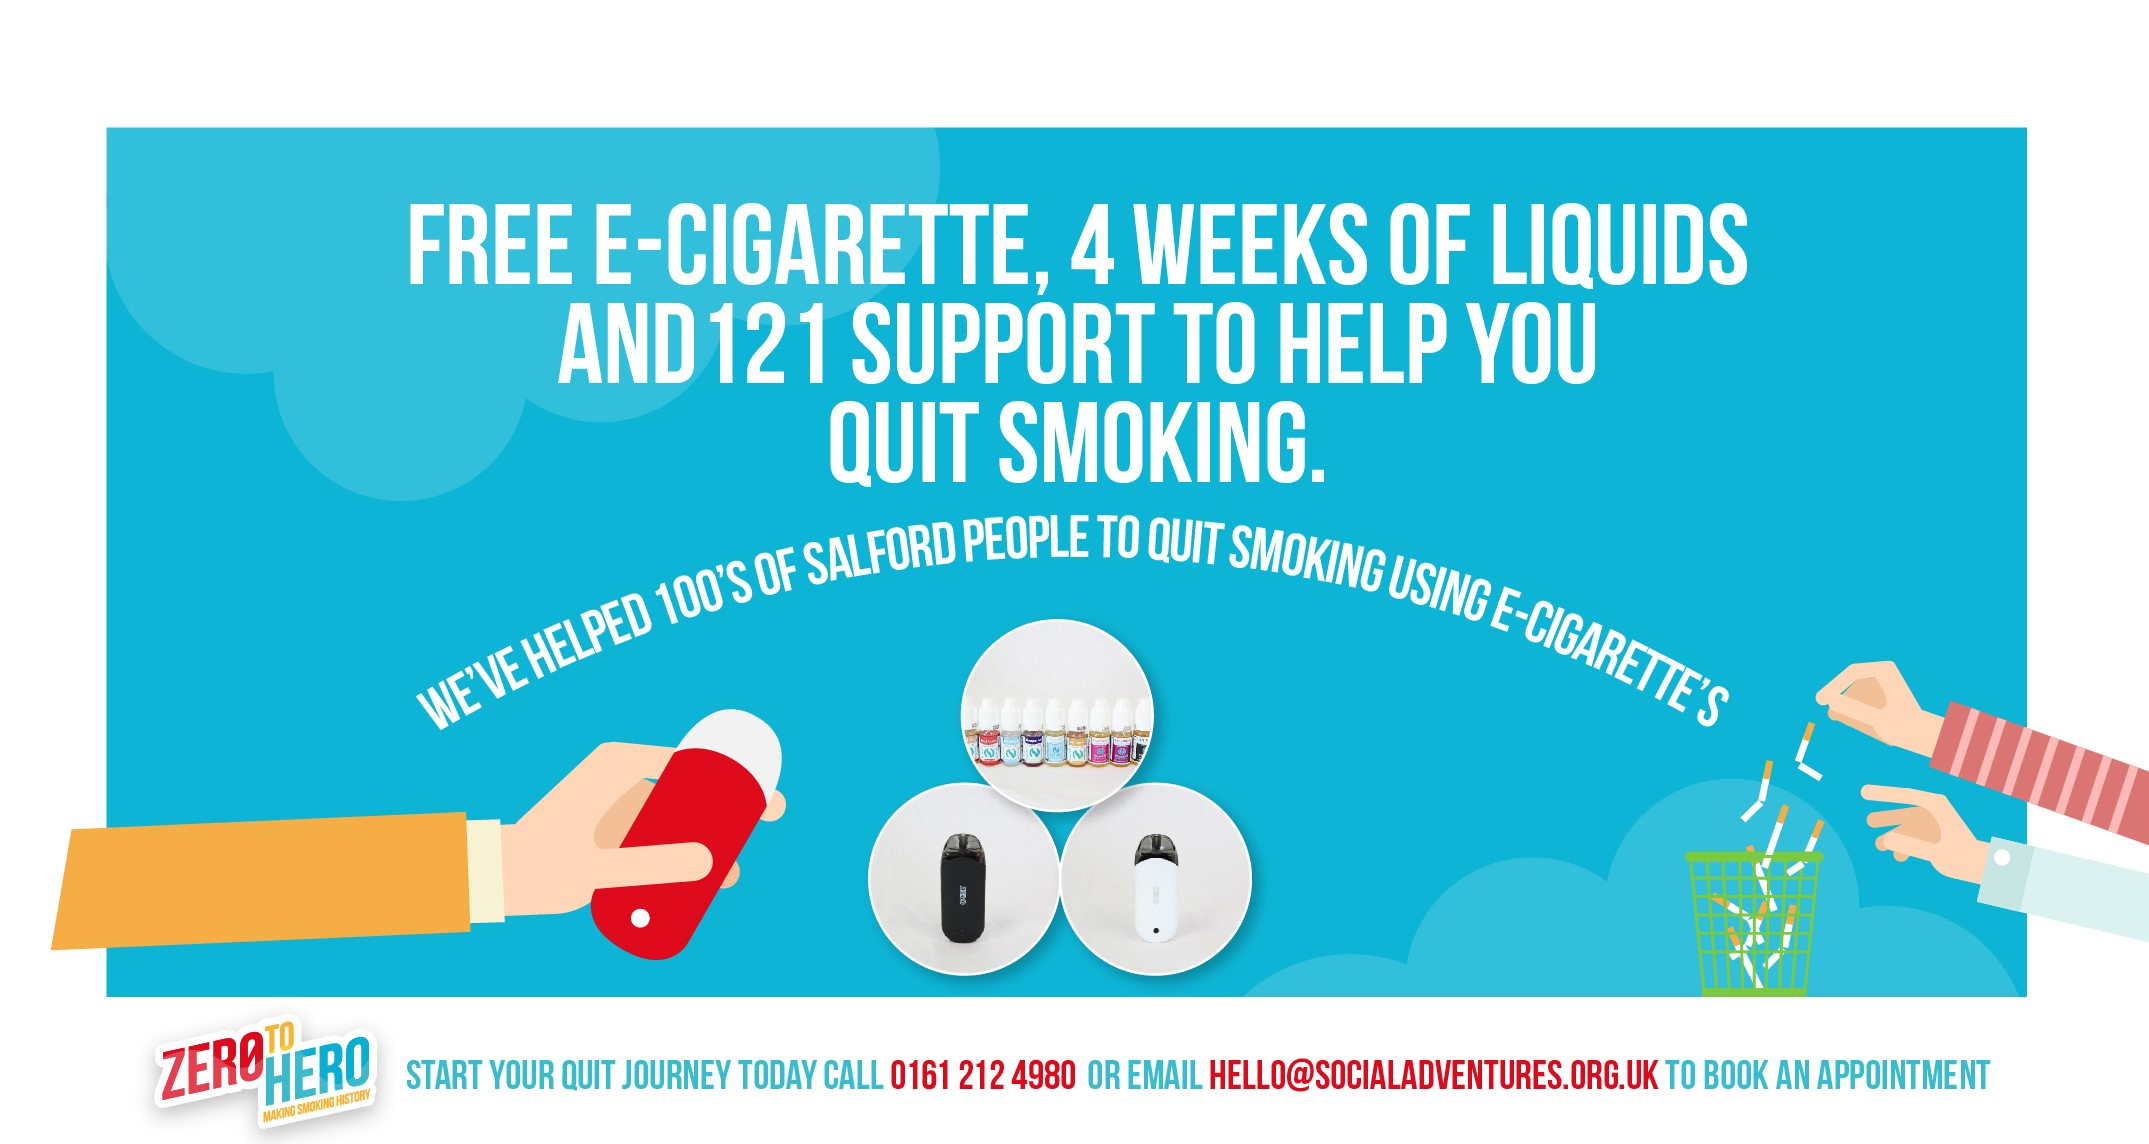 Free ecig and quit smooking support in salford